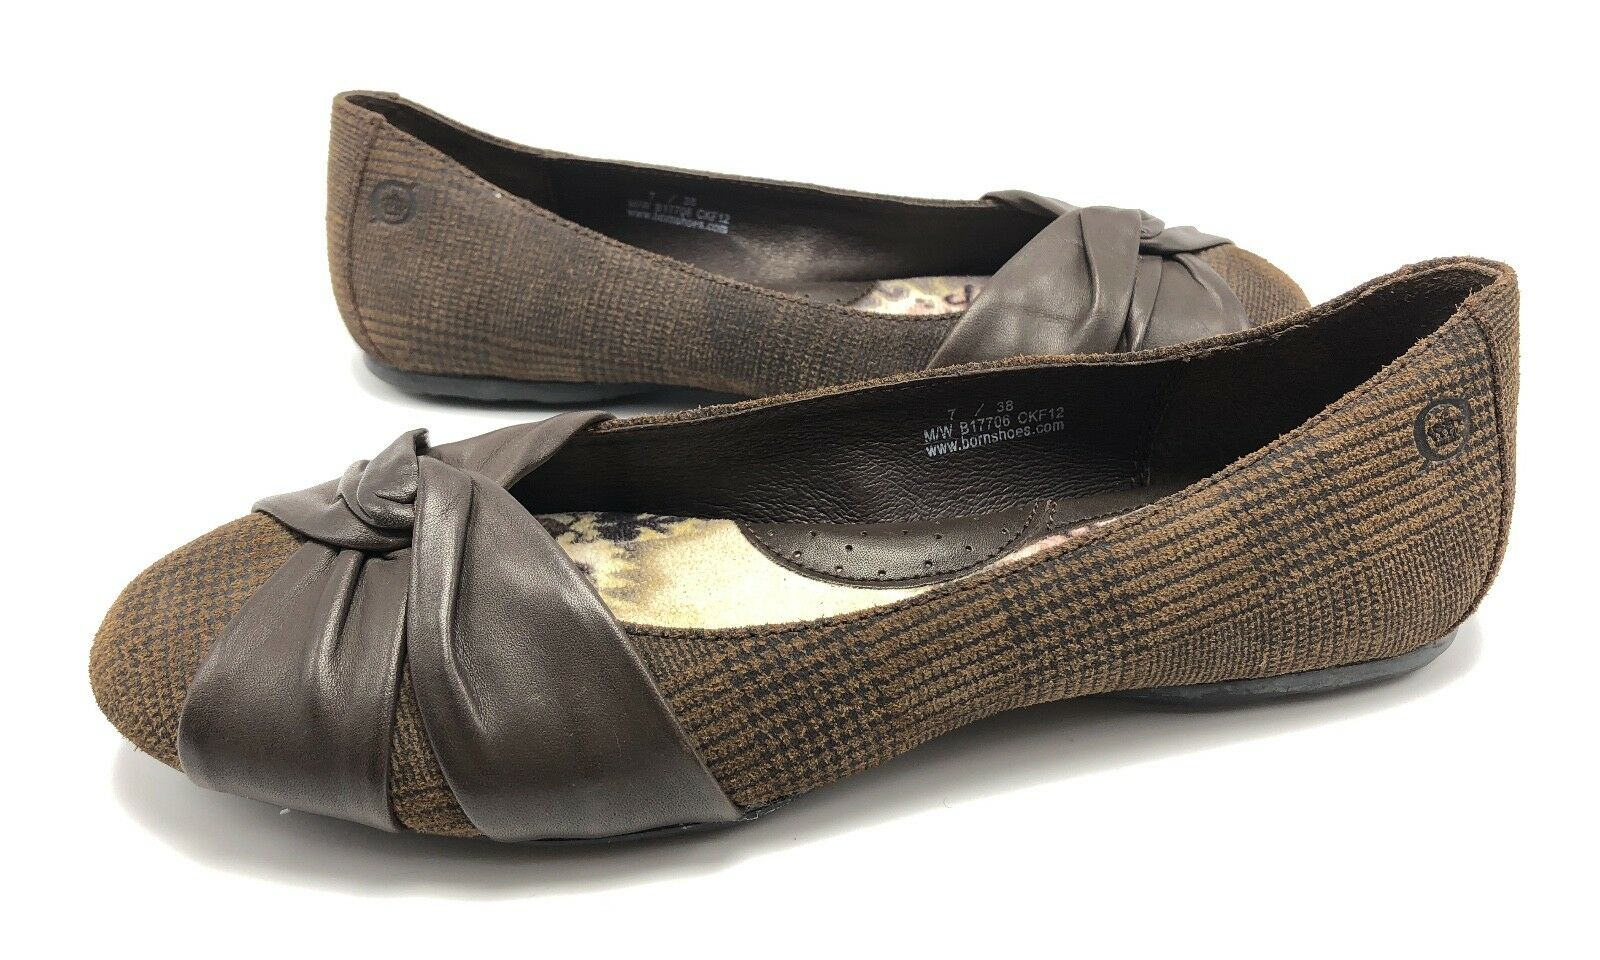 Born Lilly Womens 7M Brown Leather Plaid Round Toe Knotted Ballet Flats shoes